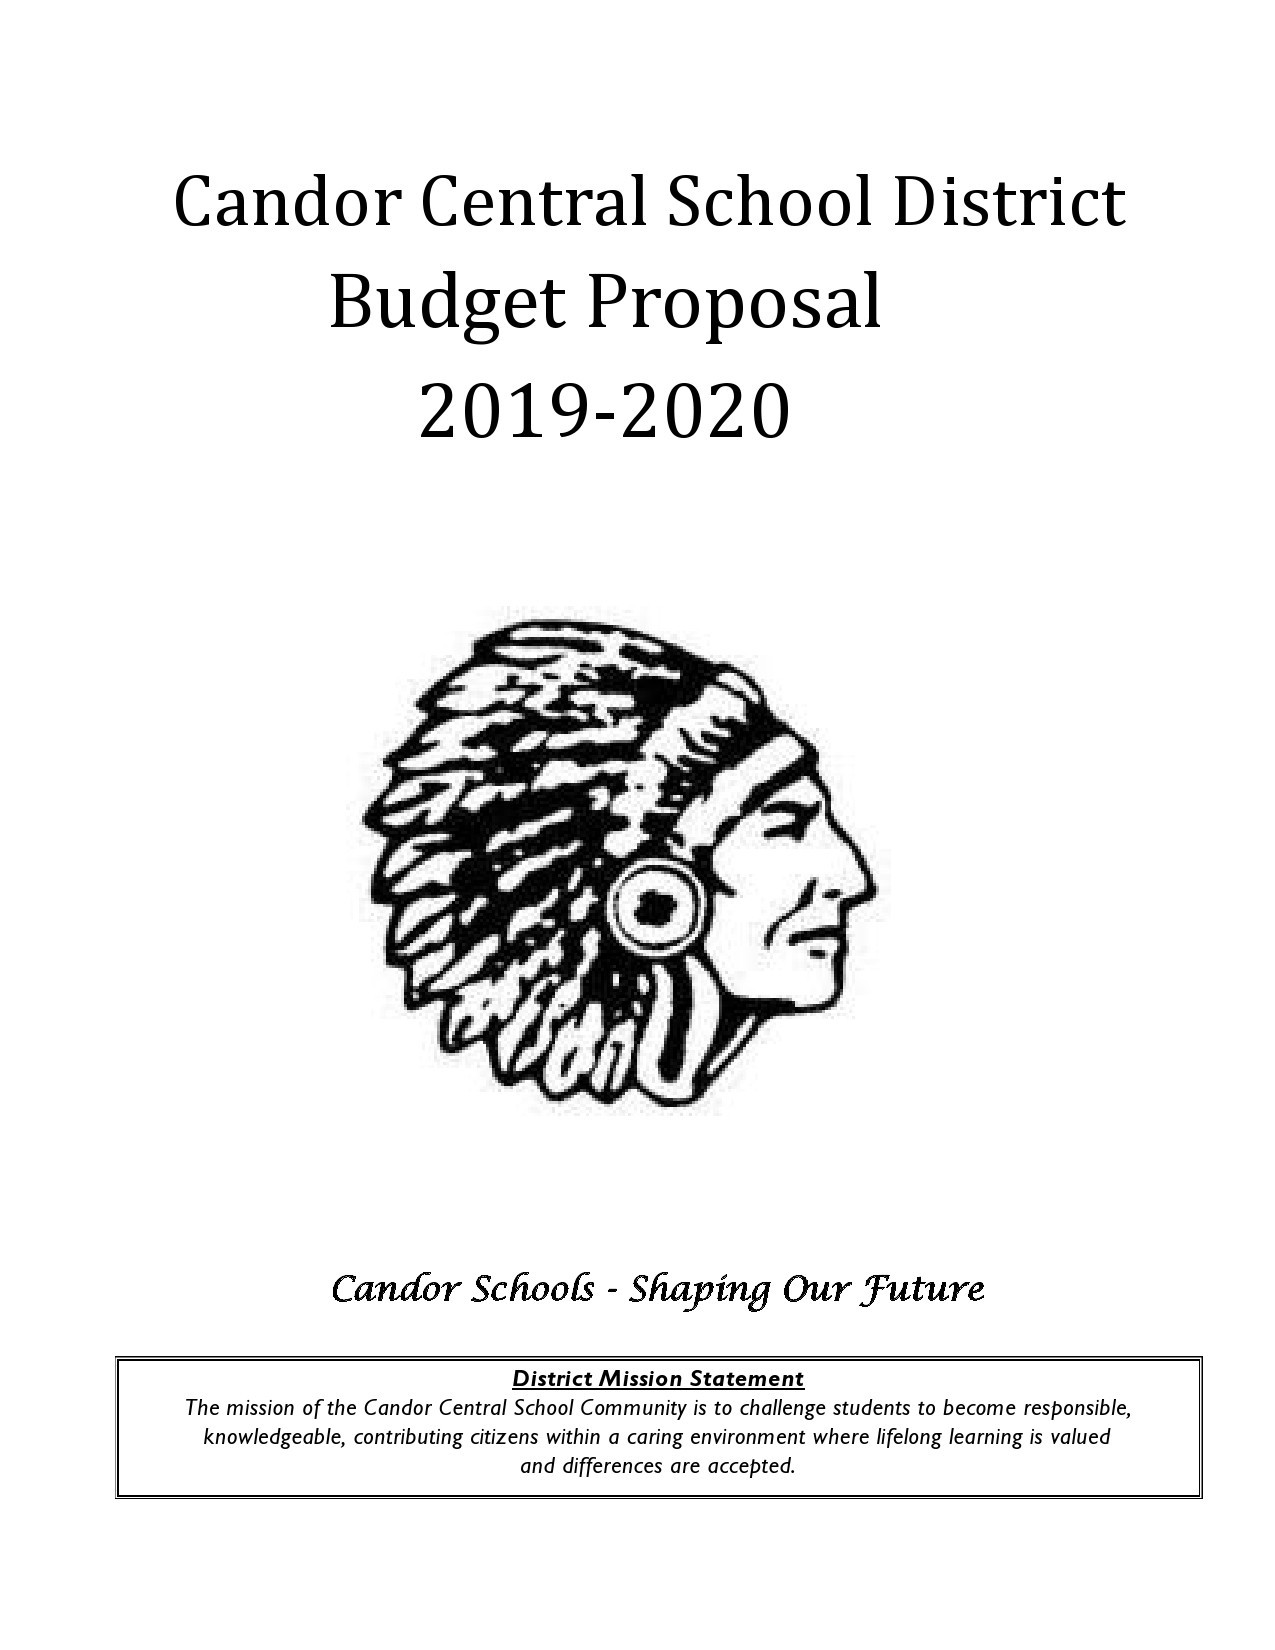 Free budget proposal template 30